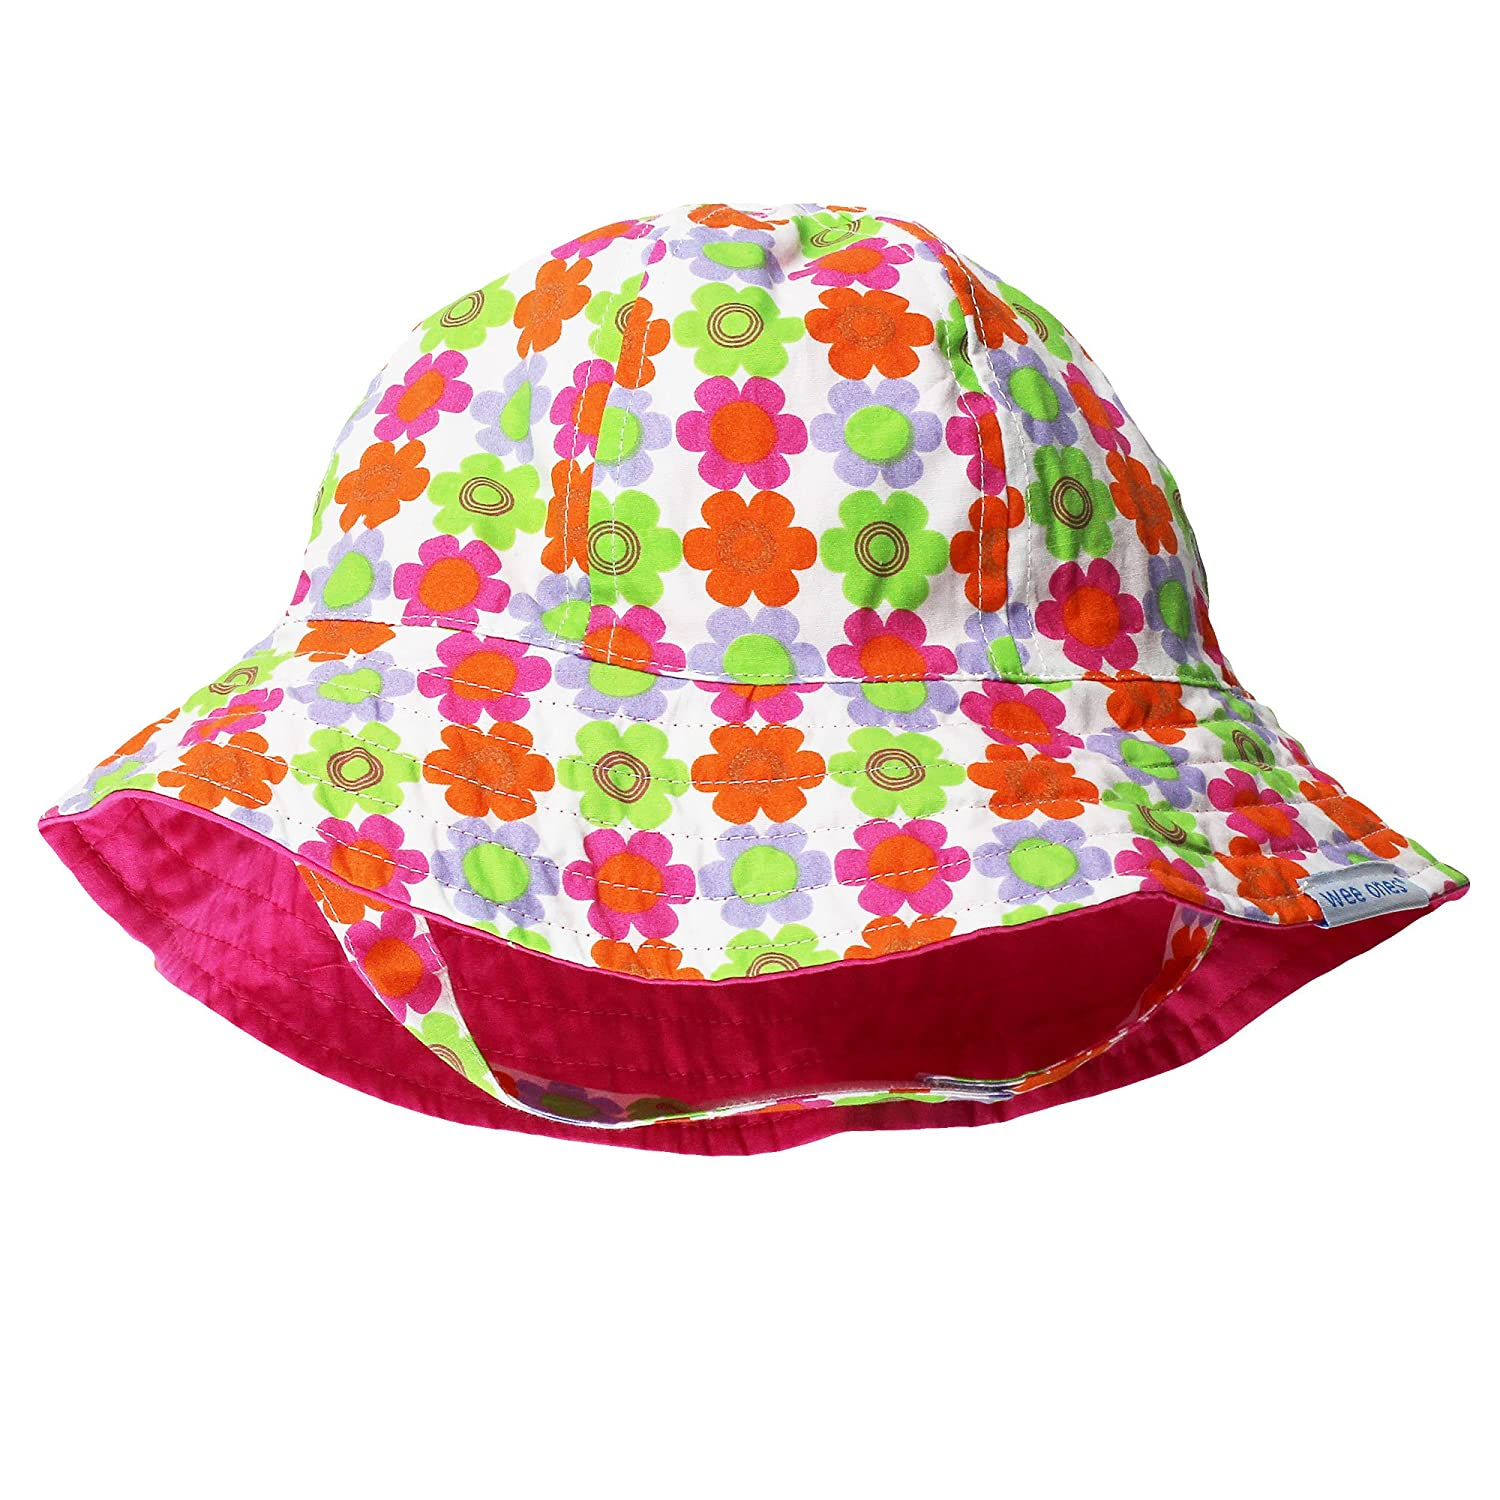 Wee Ones Reversible 2-in-1 Baby Sun Hats Baby and Infant Girls